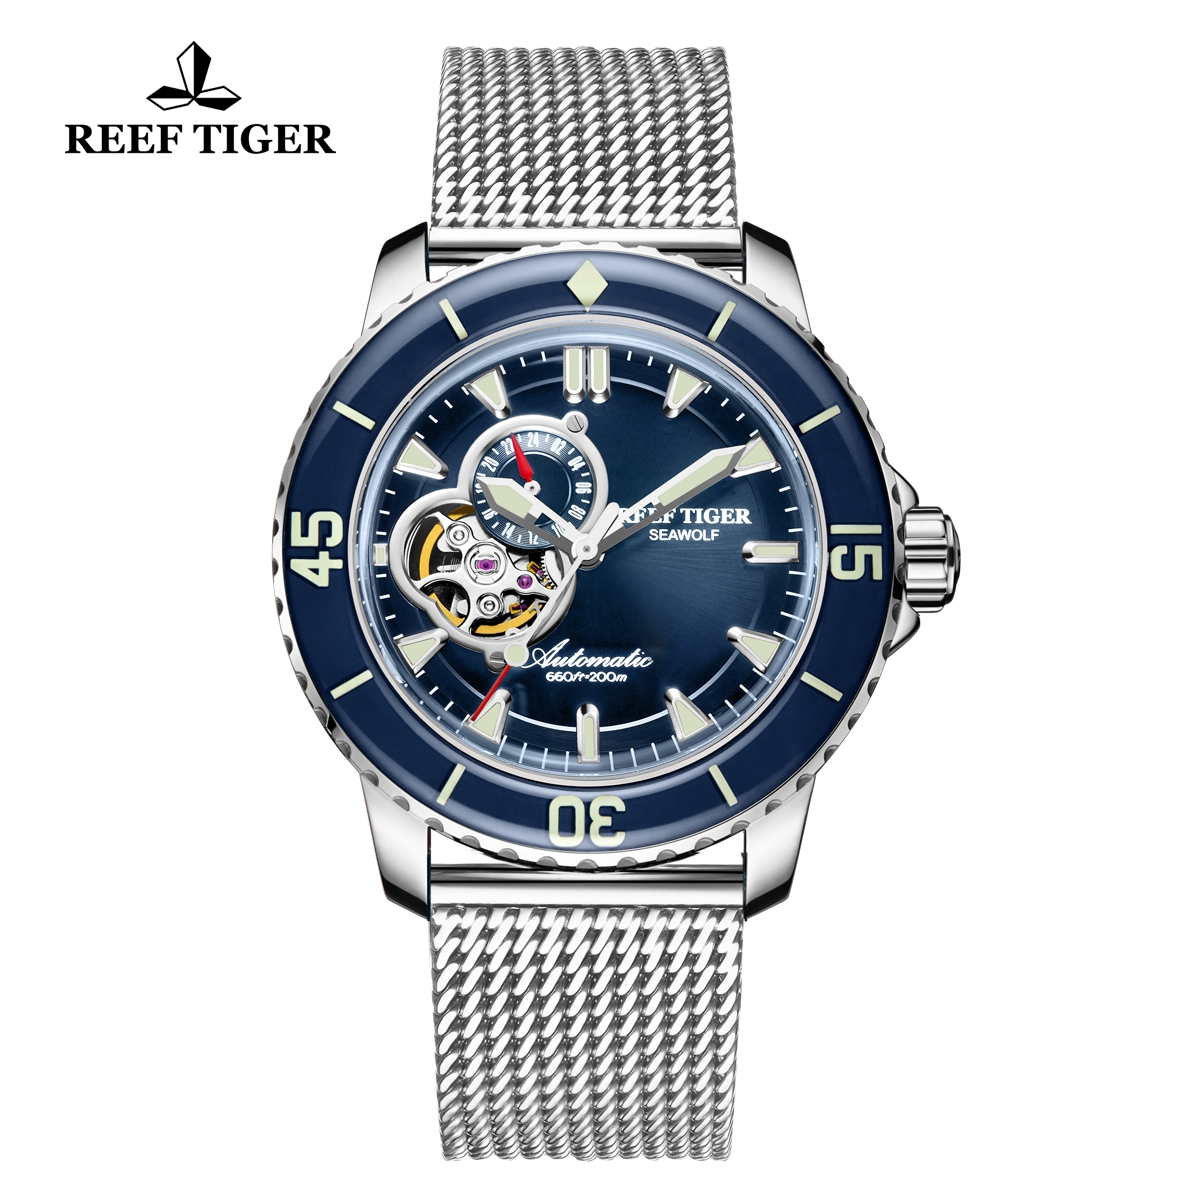 Reef Tiger Sea Wolf Dress Automatic Watch Steel Blue Dial RGA3039-YLY